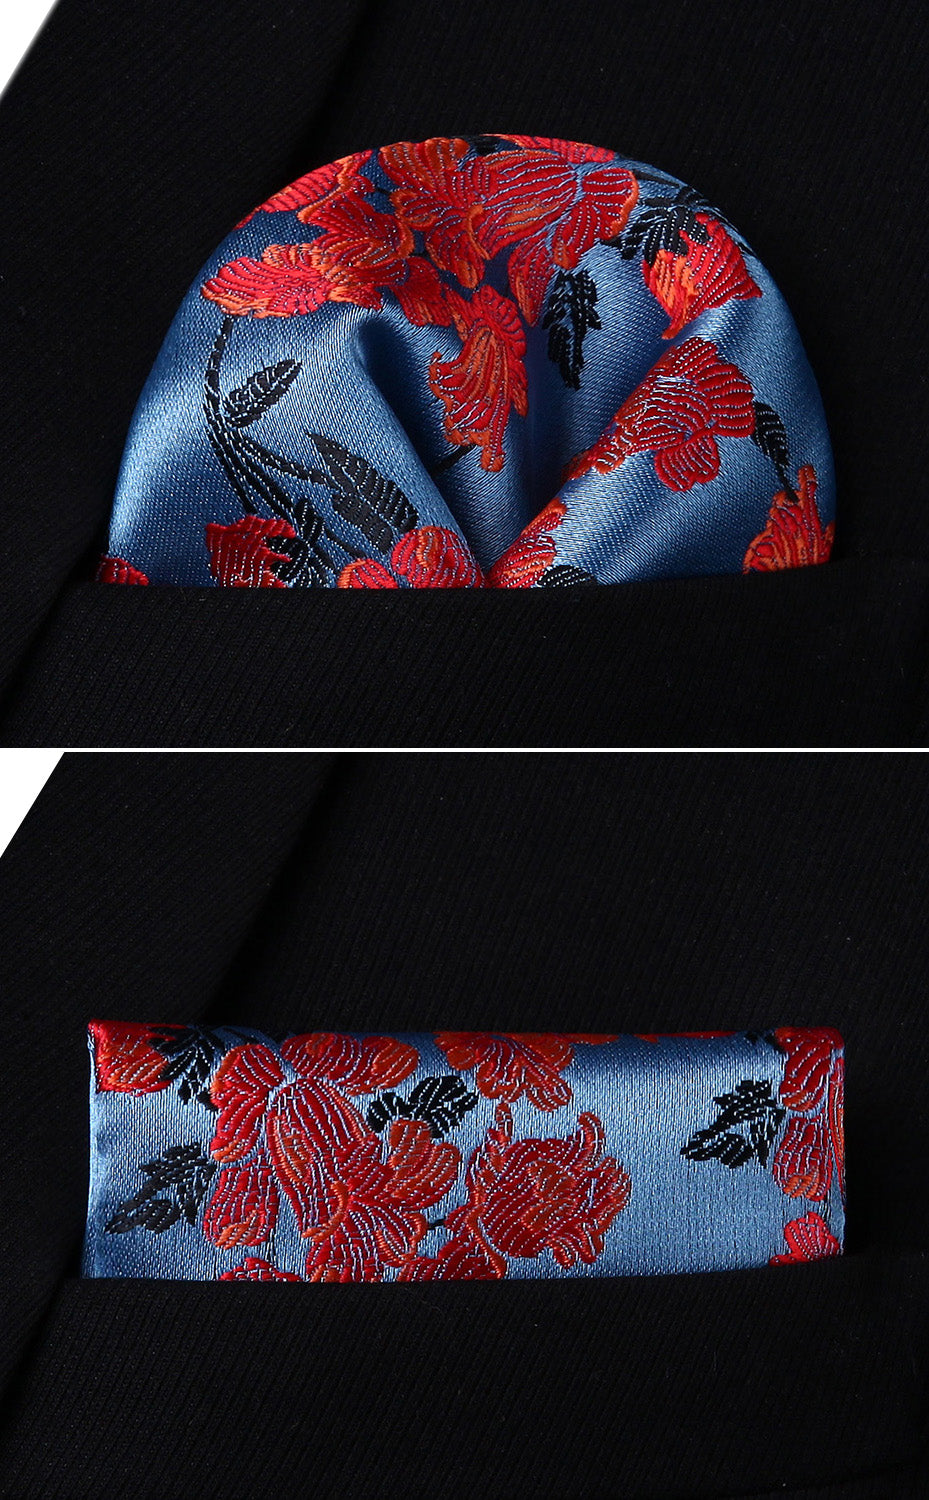 Floral Sky Tie and Pocket Square - SOPHGENT